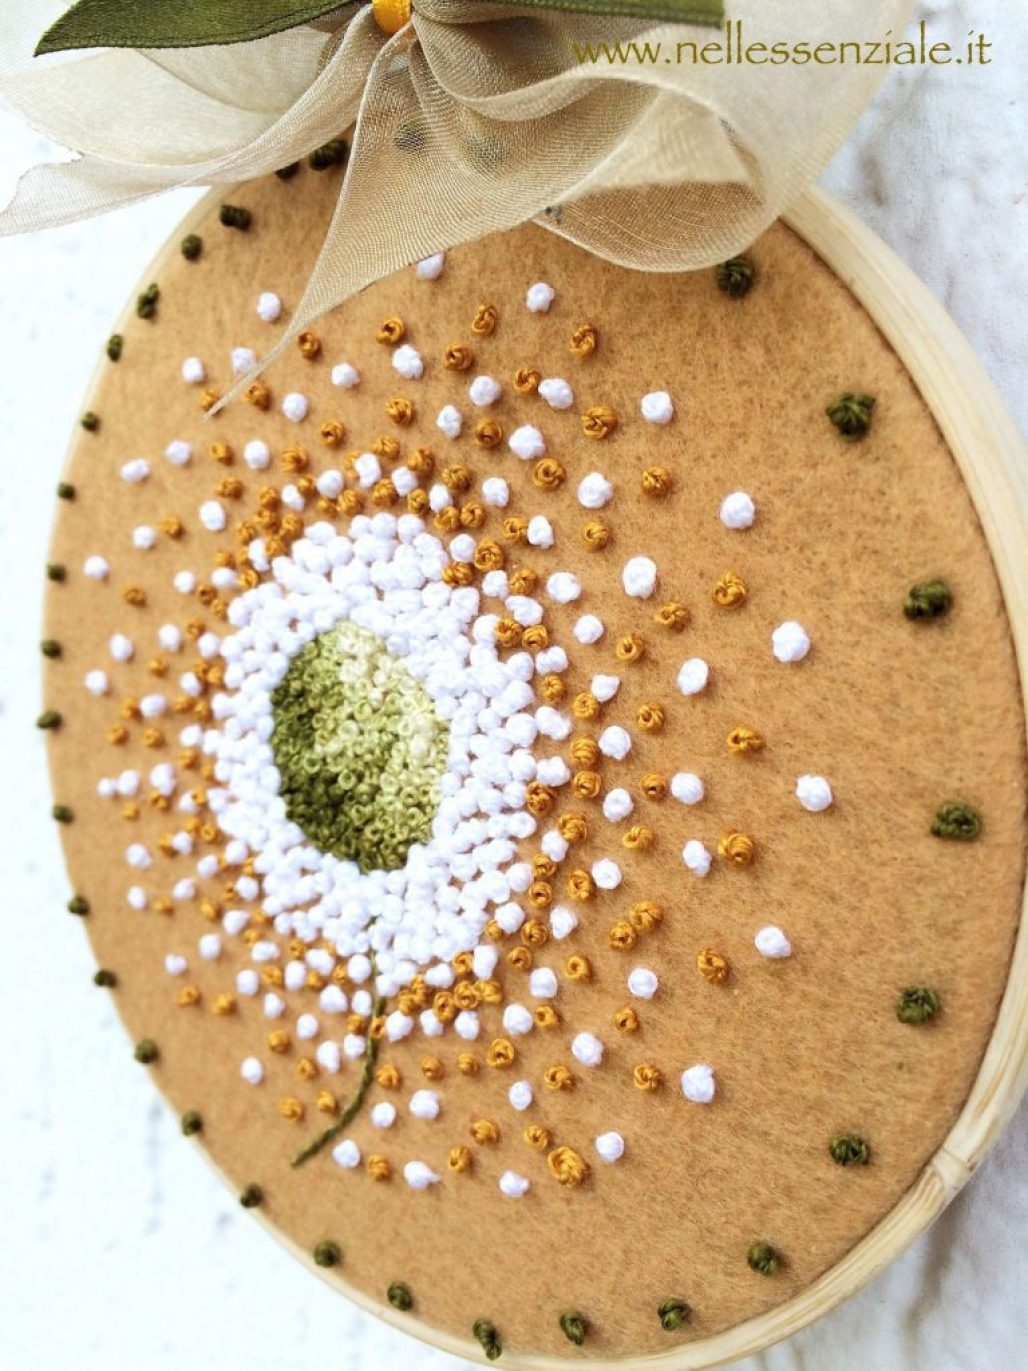 Soffione - Embroidery Hoop Art